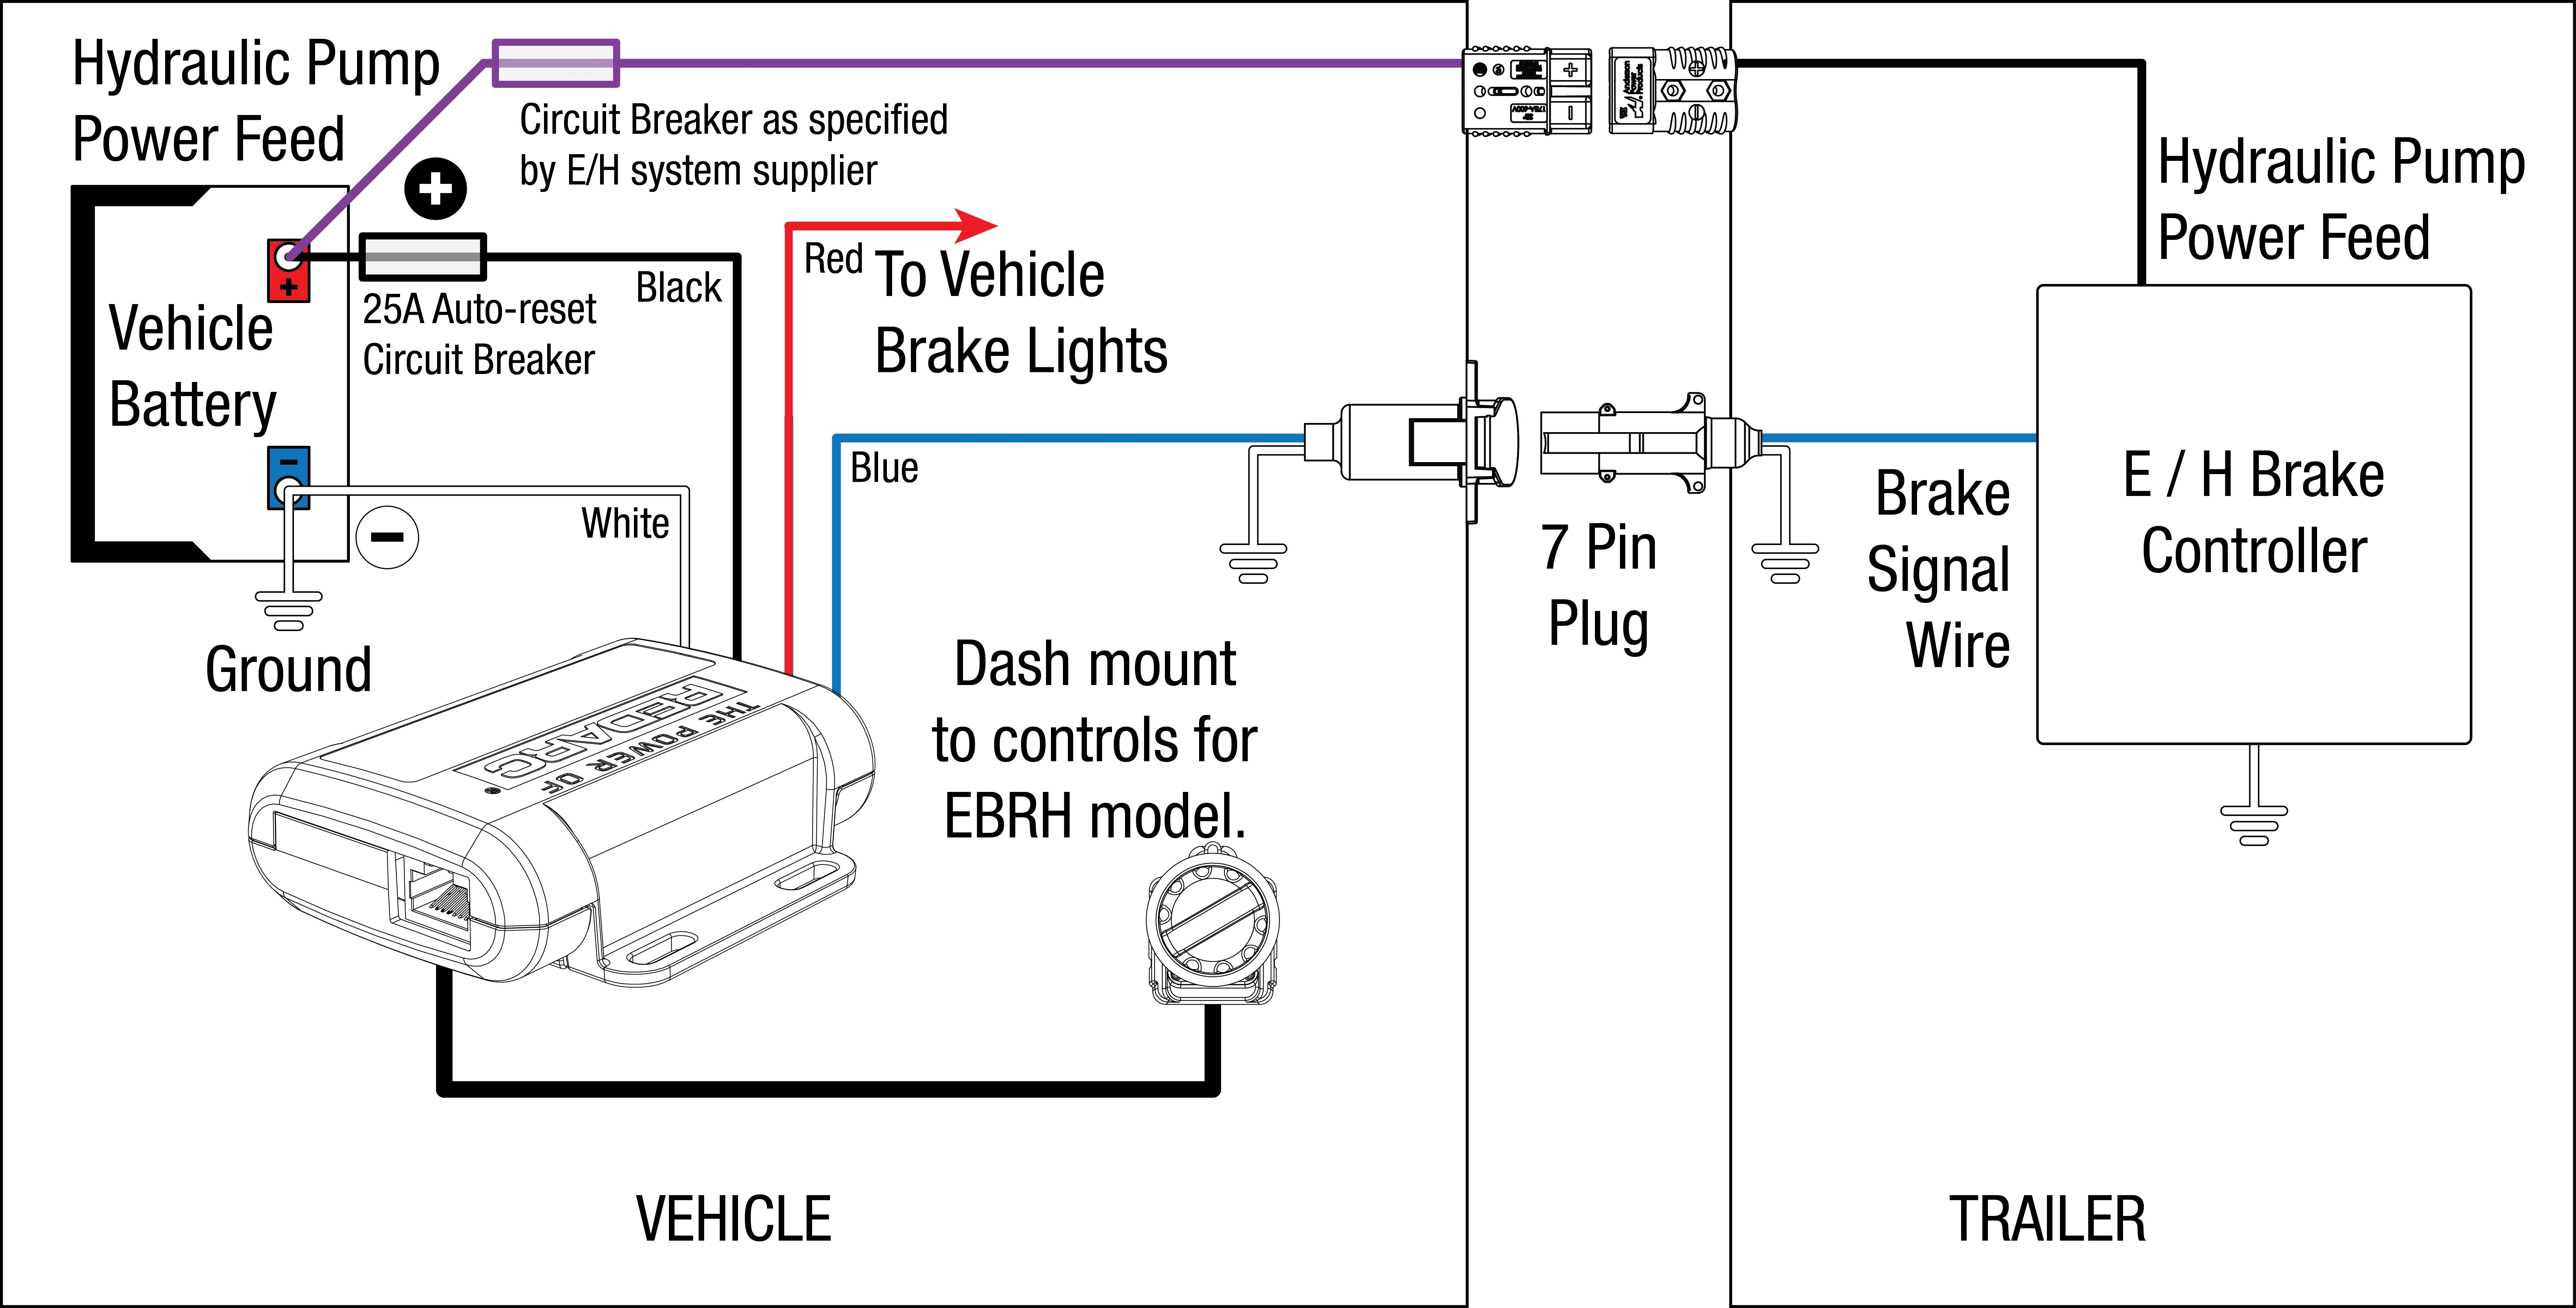 Break Away Systems Wiring Diagram Kymco Super 8 125 Circuit For Agility 50 Electric Trailer Brakes Gimnazijabp Of